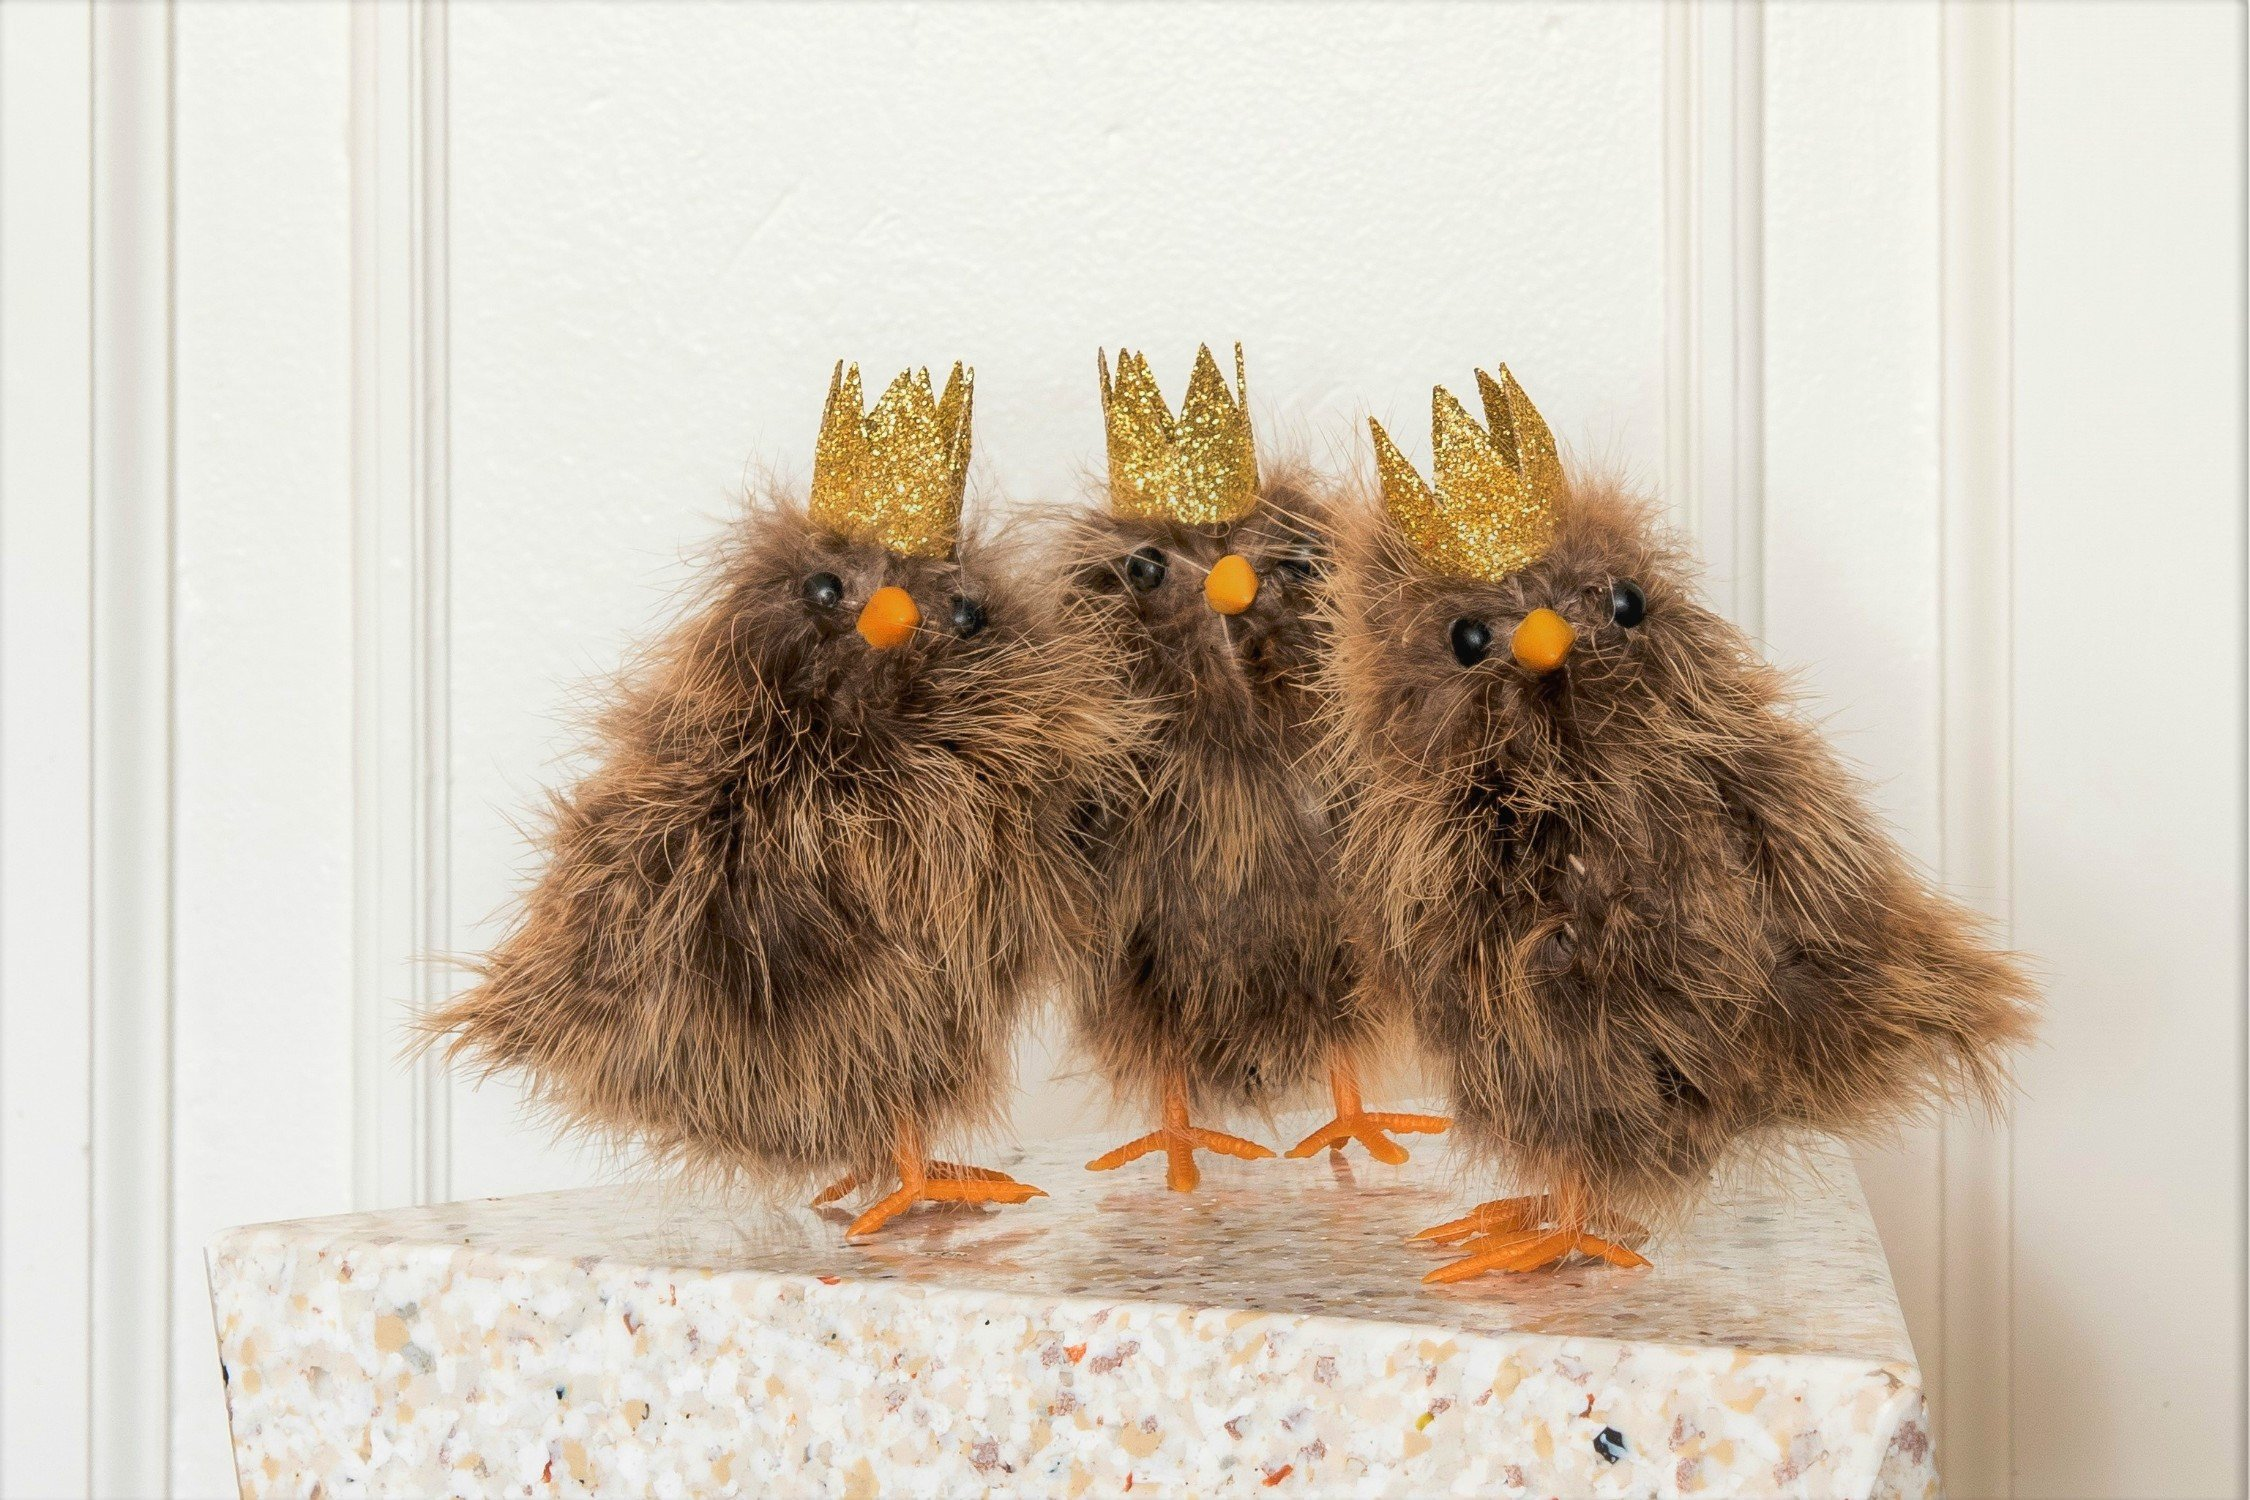 Brown Feathery Chicks with Crowns (15 cm) - Set of 3